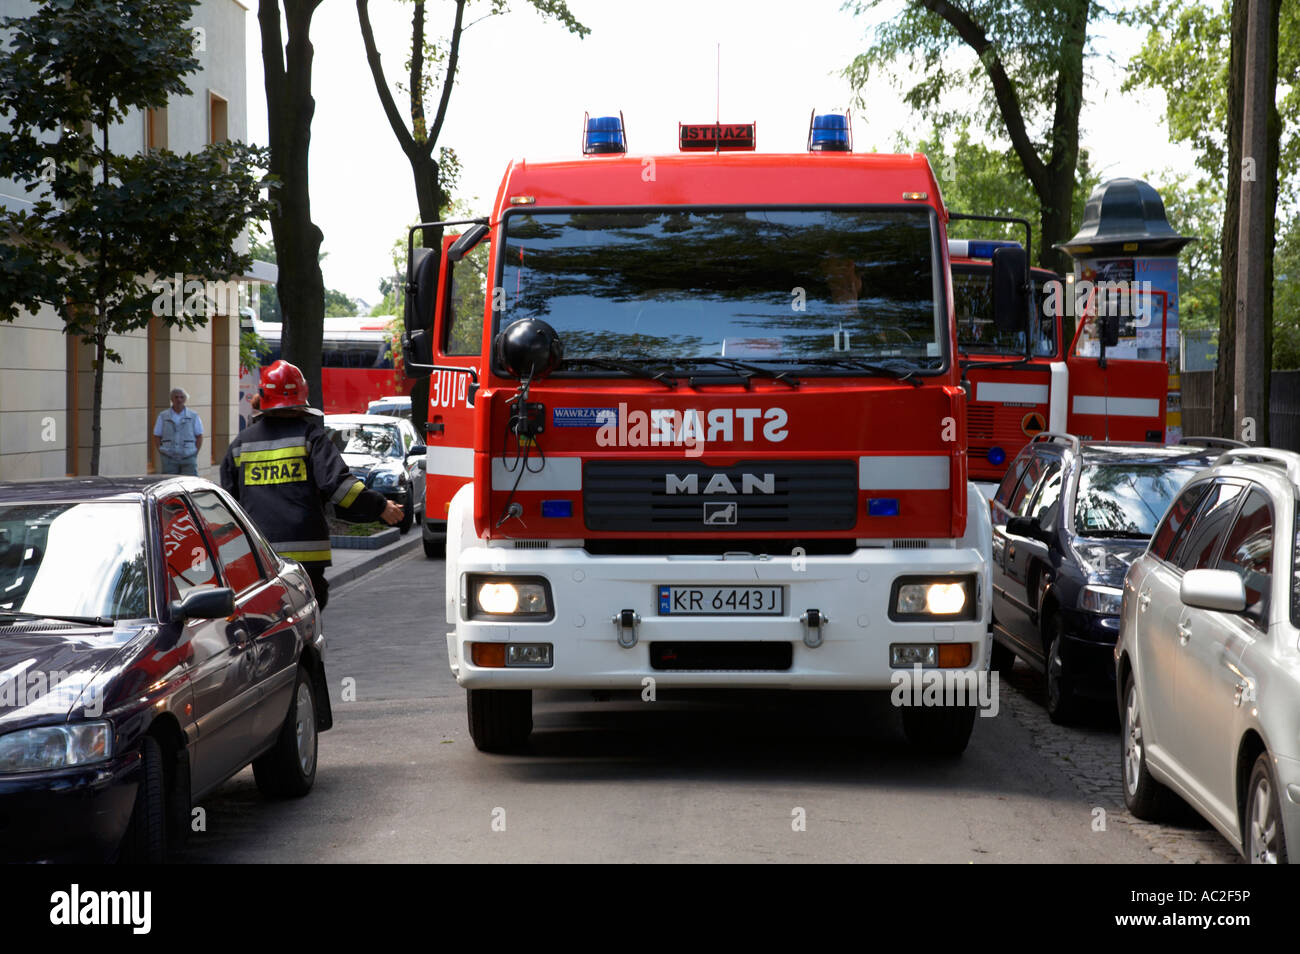 polish fire brigade fire guard straz krakow vehicle parked in middle of city street firefighter attending emergency - Stock Image